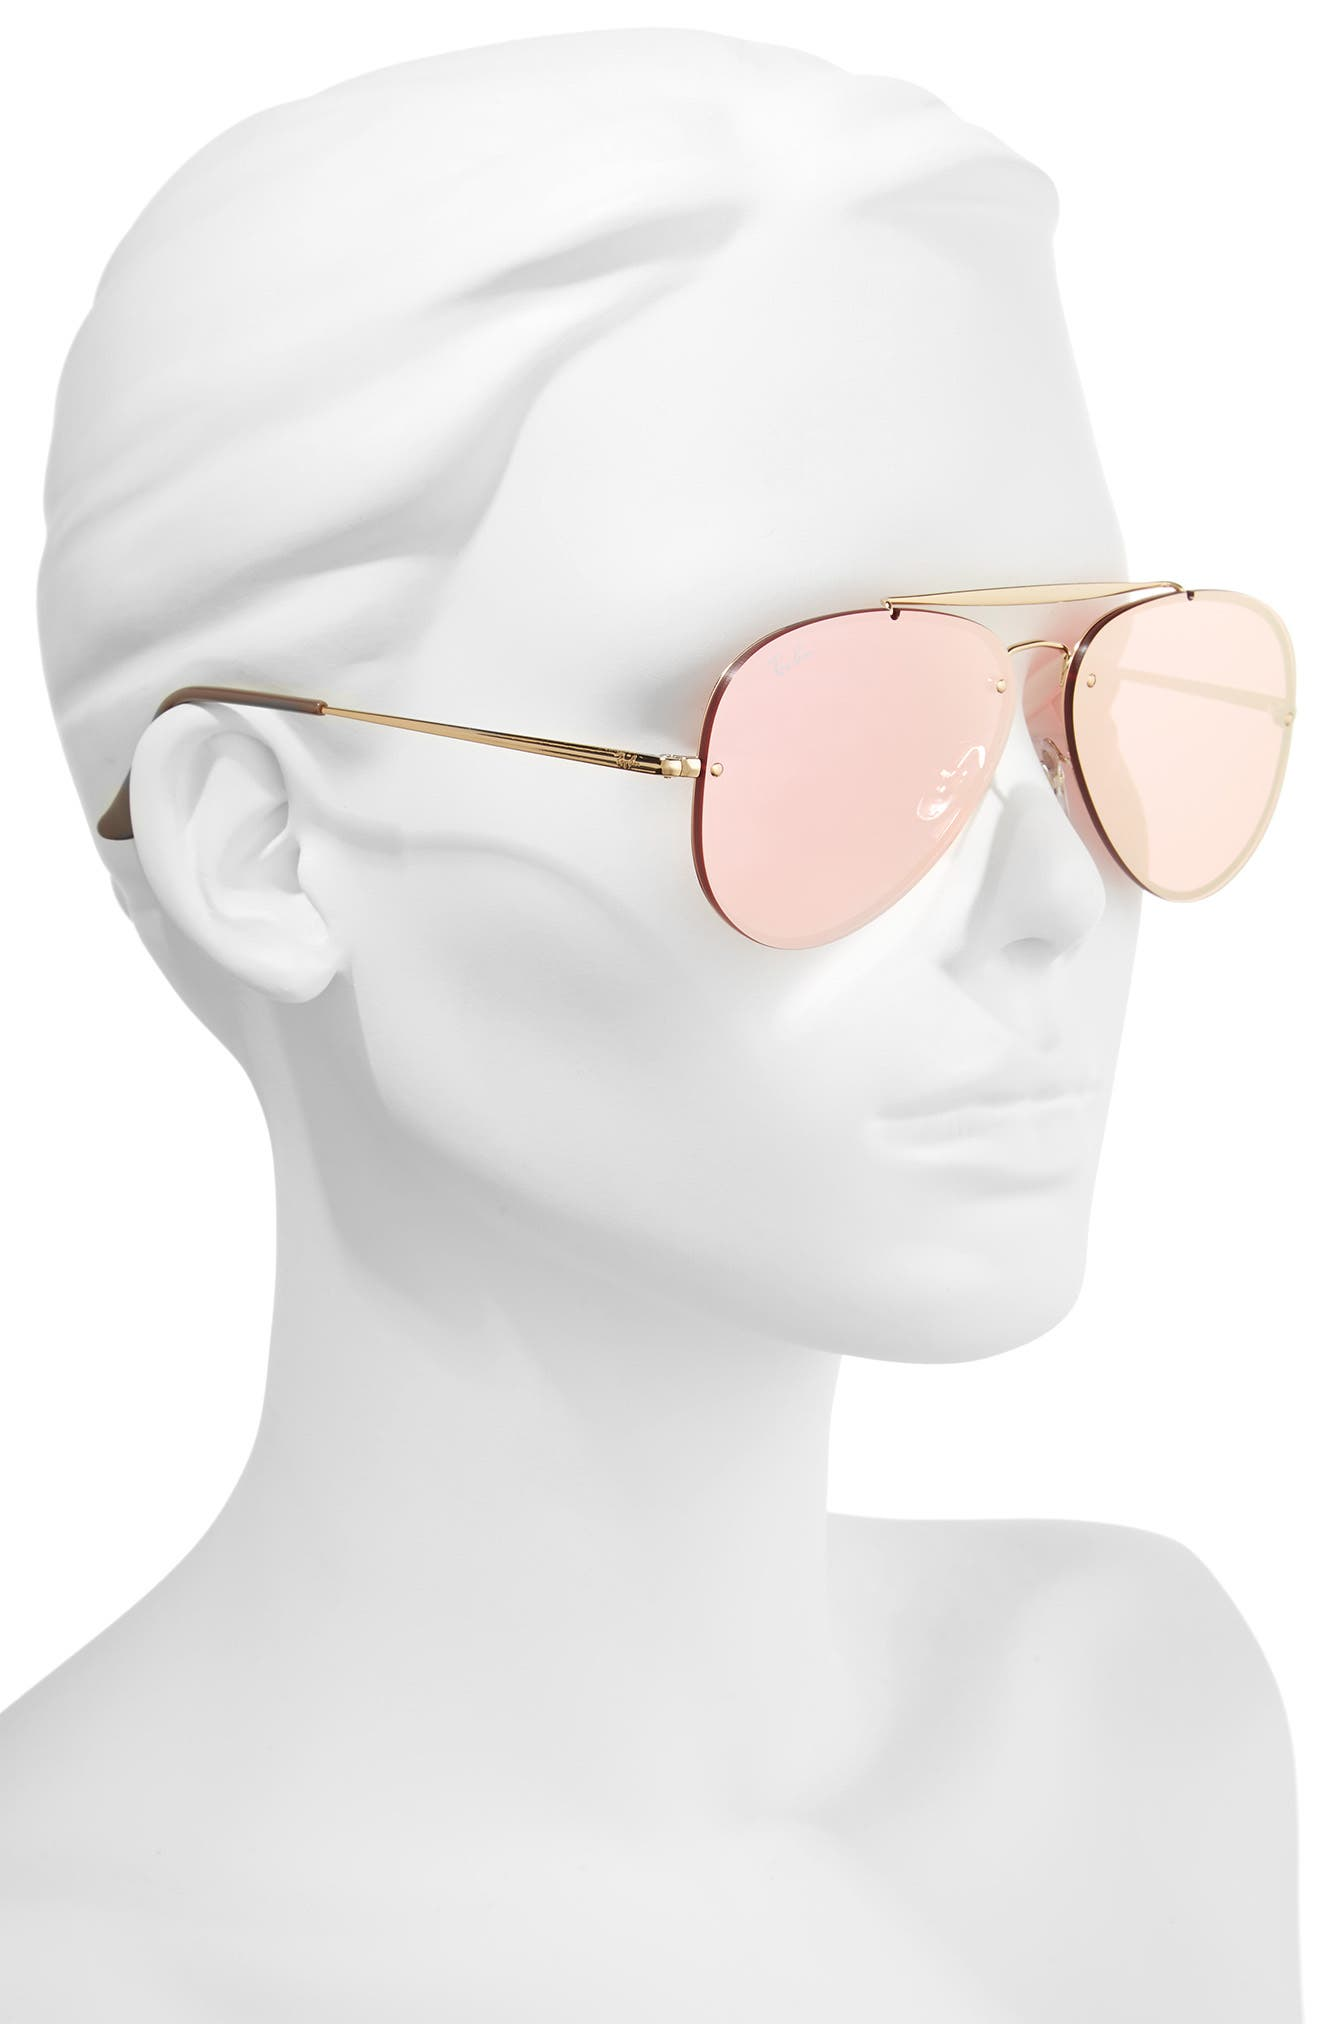 61mm Mirrored Lens Aviator Sunglasses,                             Alternate thumbnail 6, color,